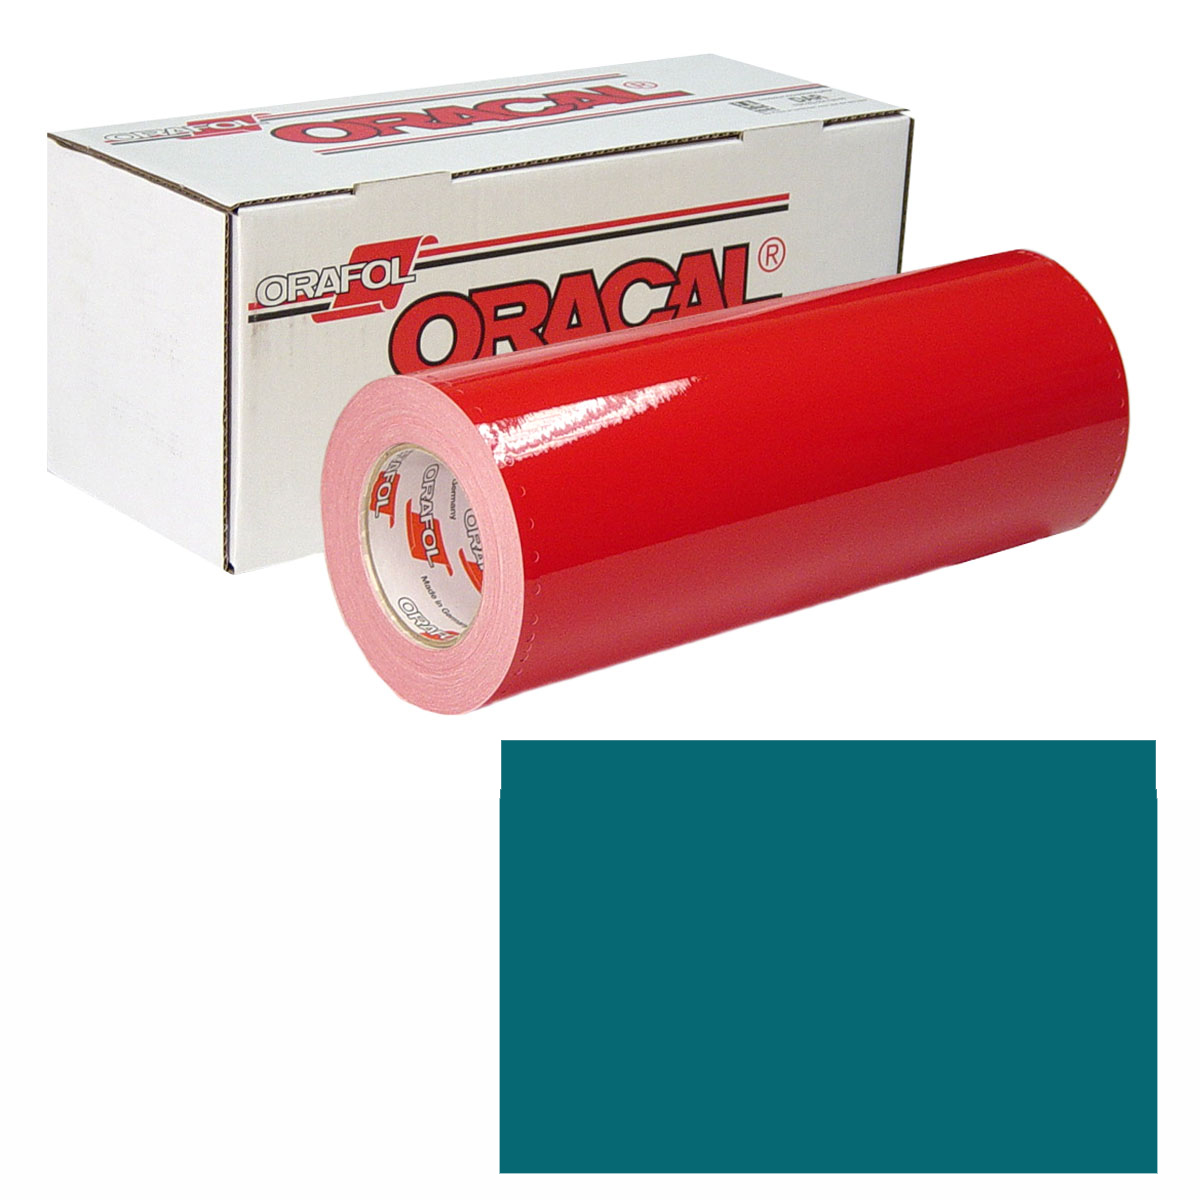 ORACAL 951M 30In X 10Yd 637 Teal Metallic